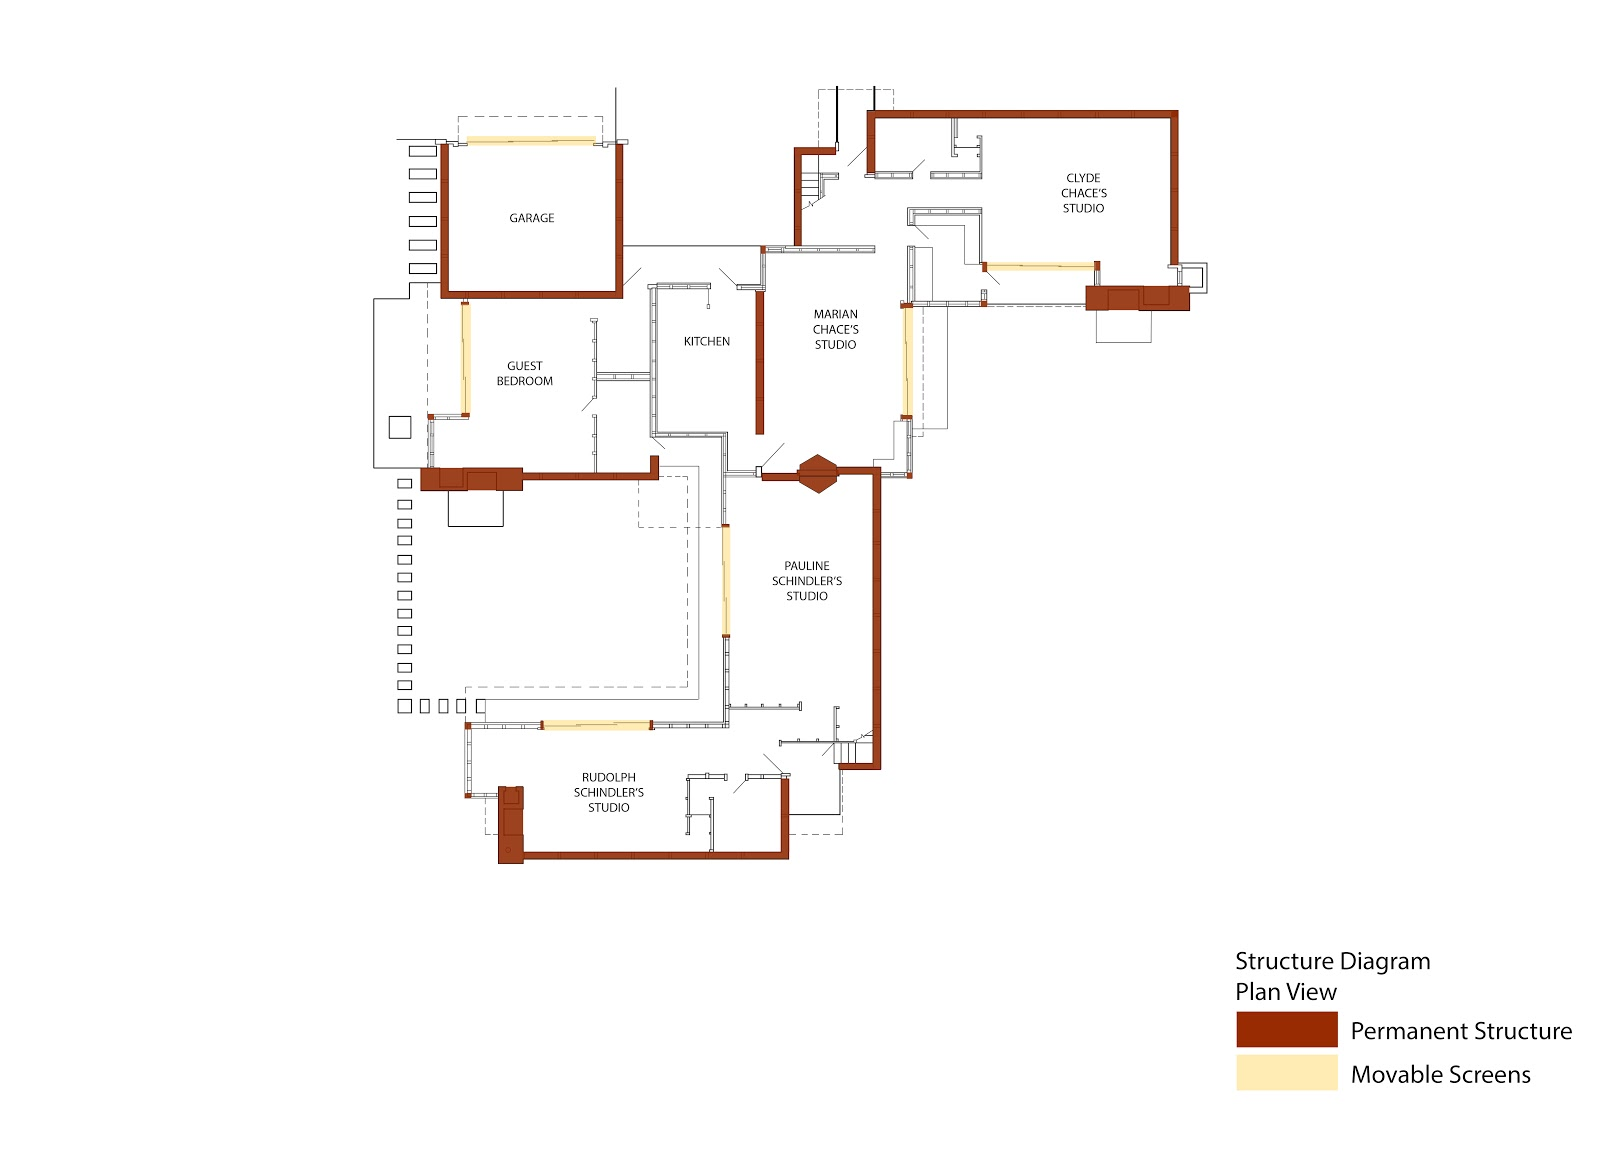 Schindler Chace House Explanatory Diagrams